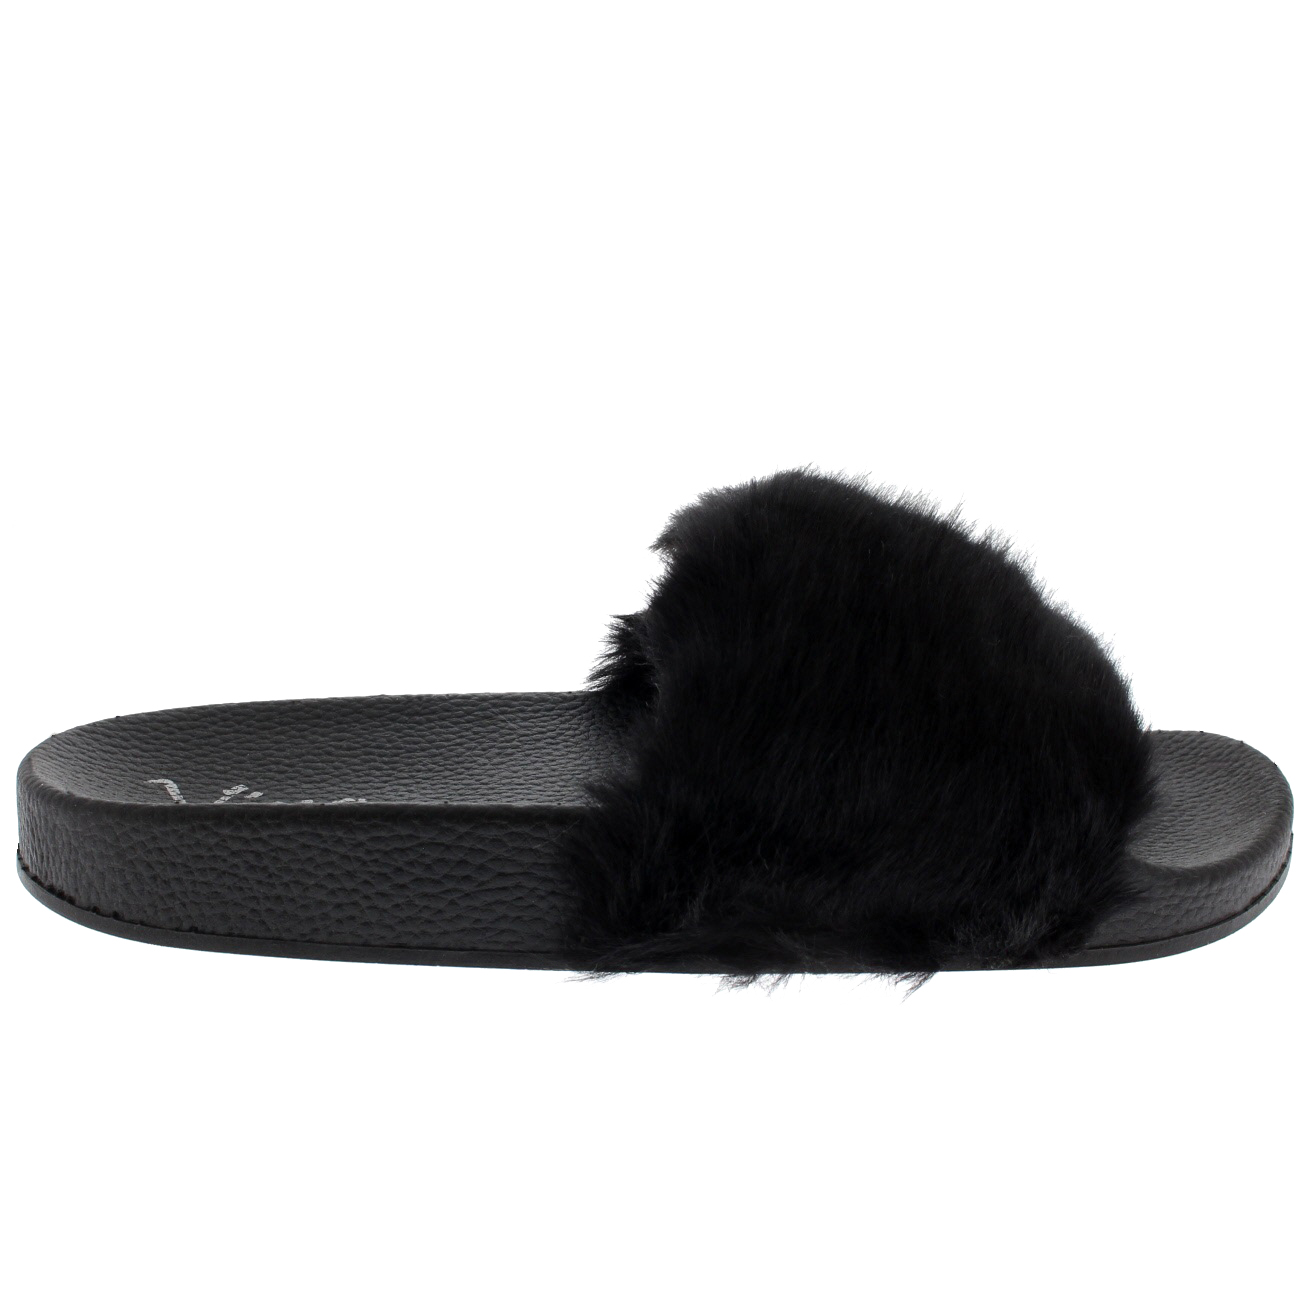 7eaa78d364fb Womens Faux Fur Single Strap Open Toe Fluffy Flat EVA Fashion ...